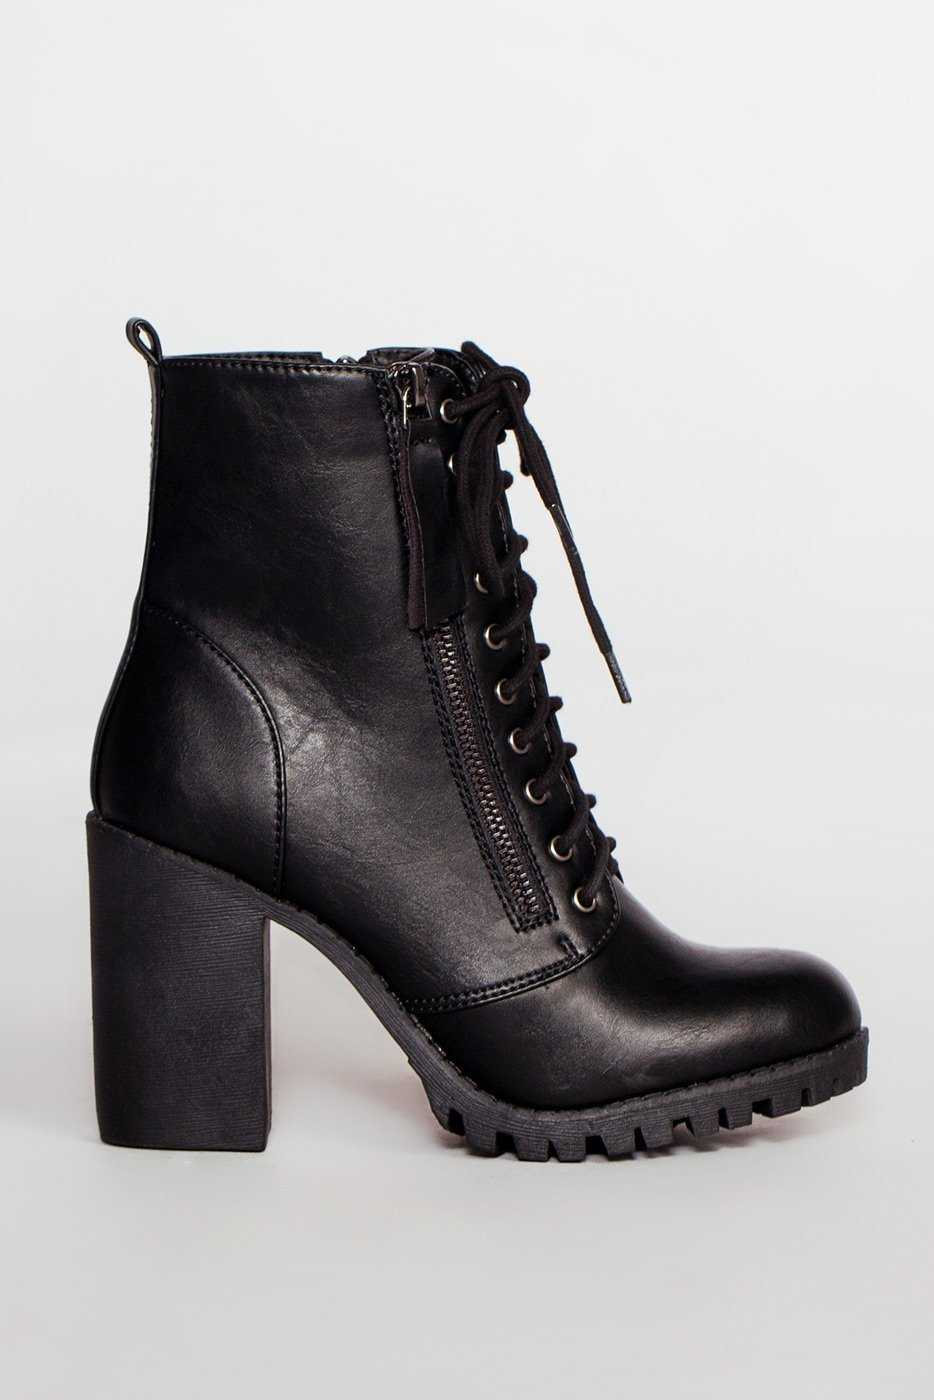 Edge Of Life Boots - Black by Priceless